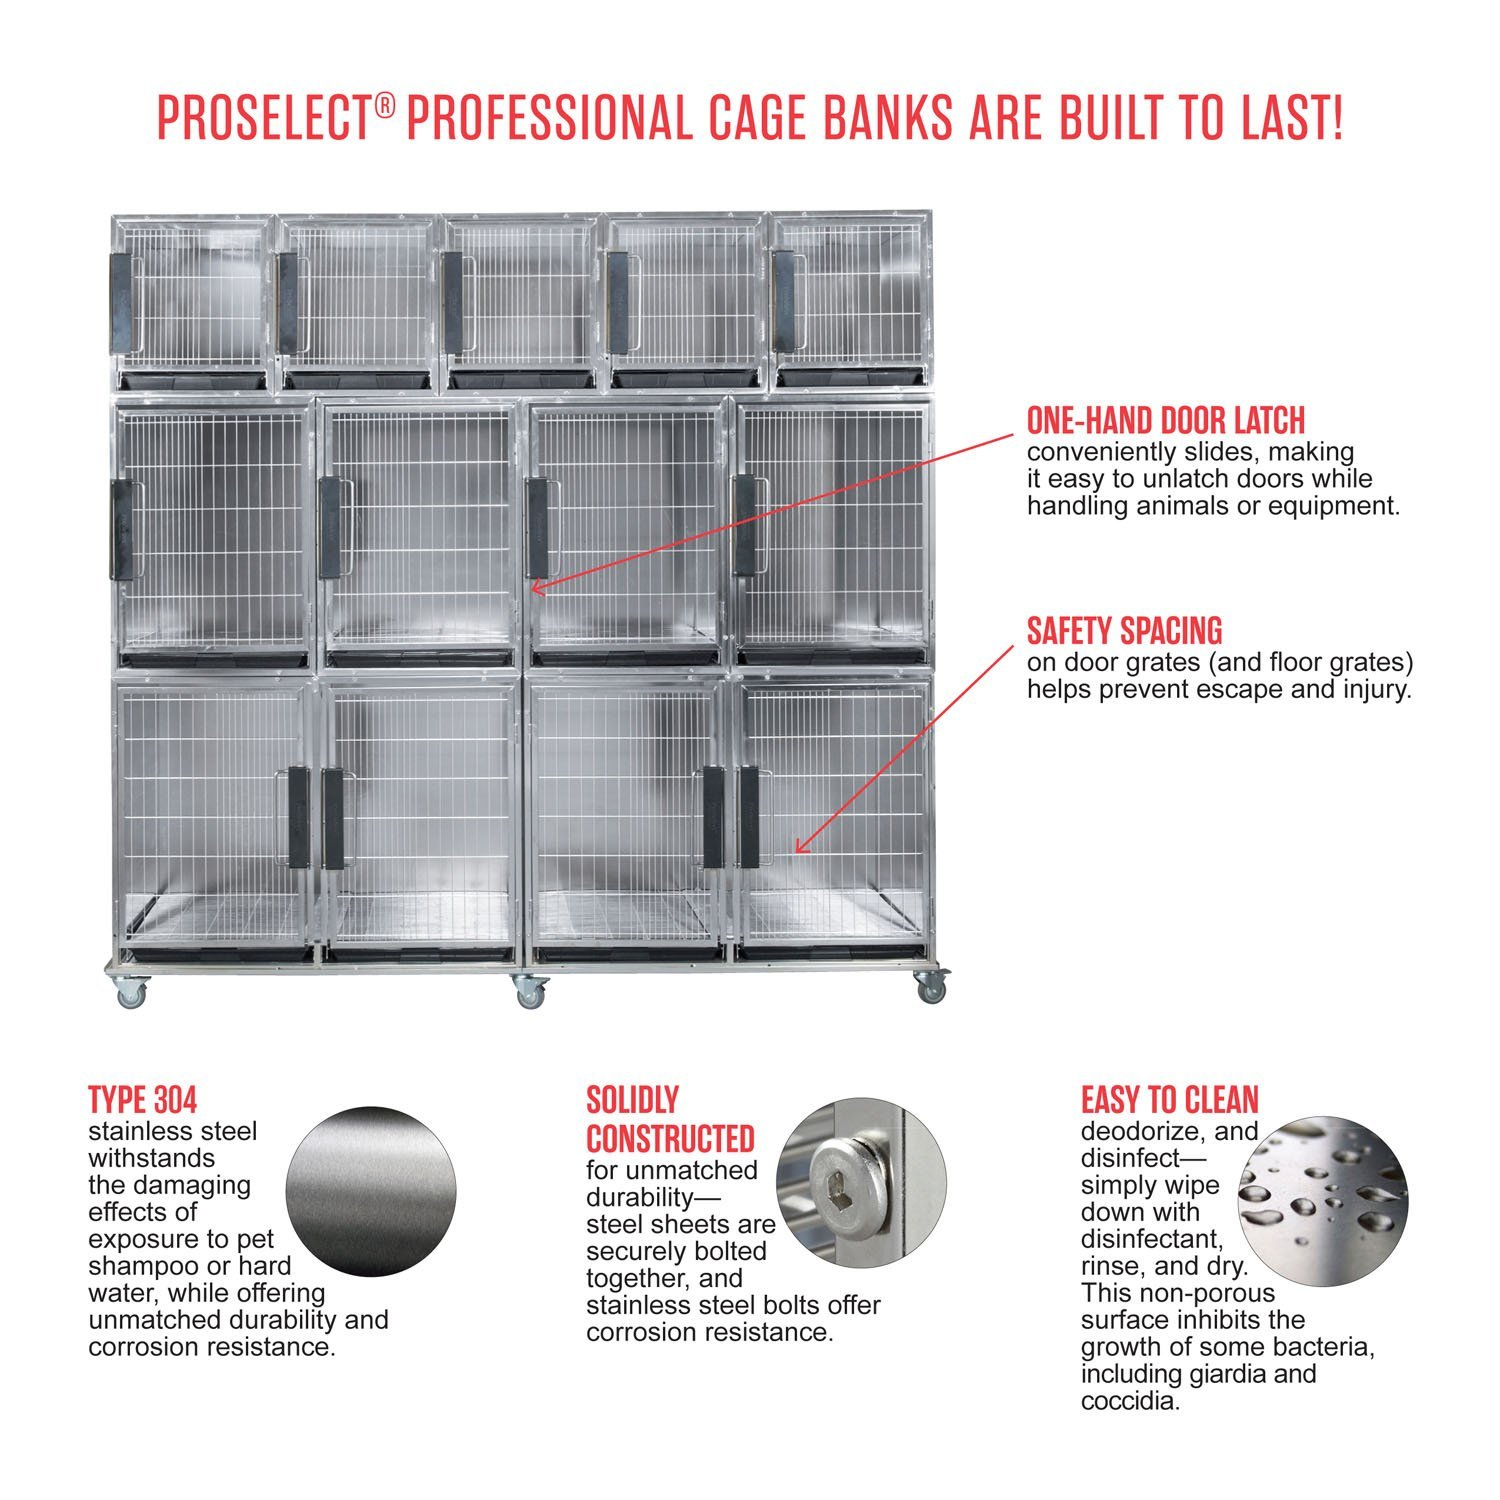 Best Cage Banks for Groomers, Animal Shelters and Veterinary Hospitals